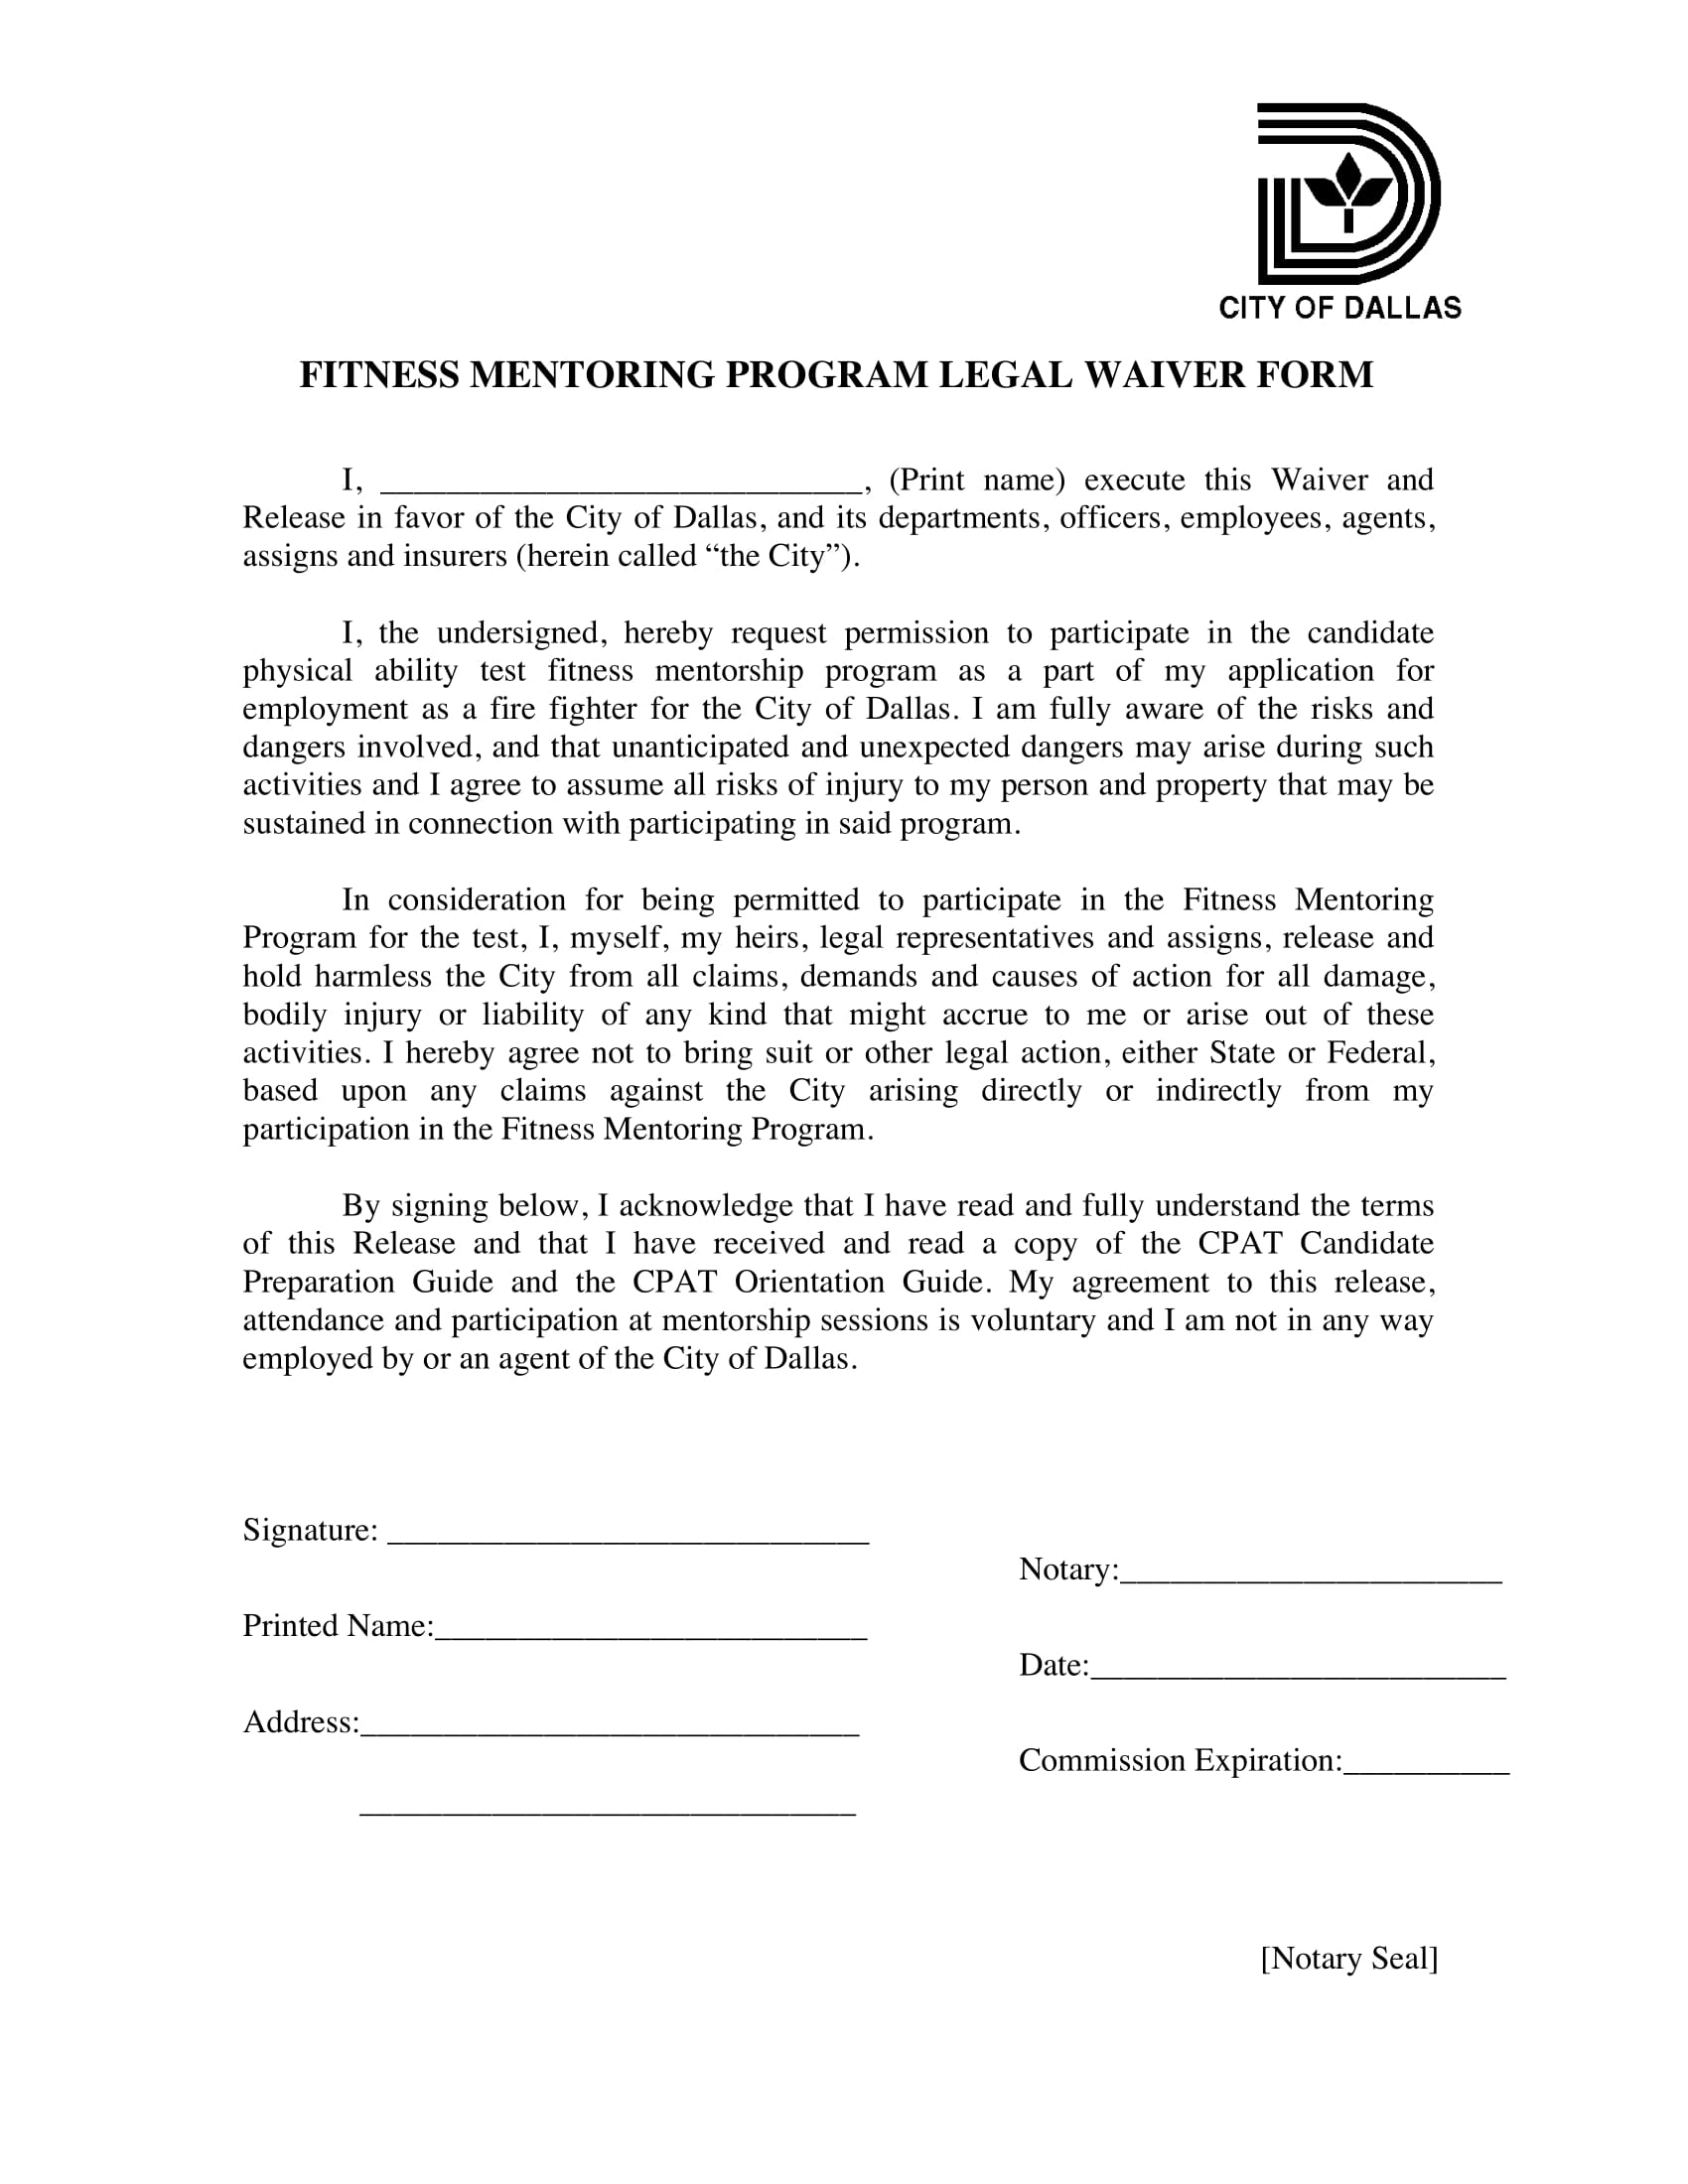 fitness mentoring legal waiver form 1